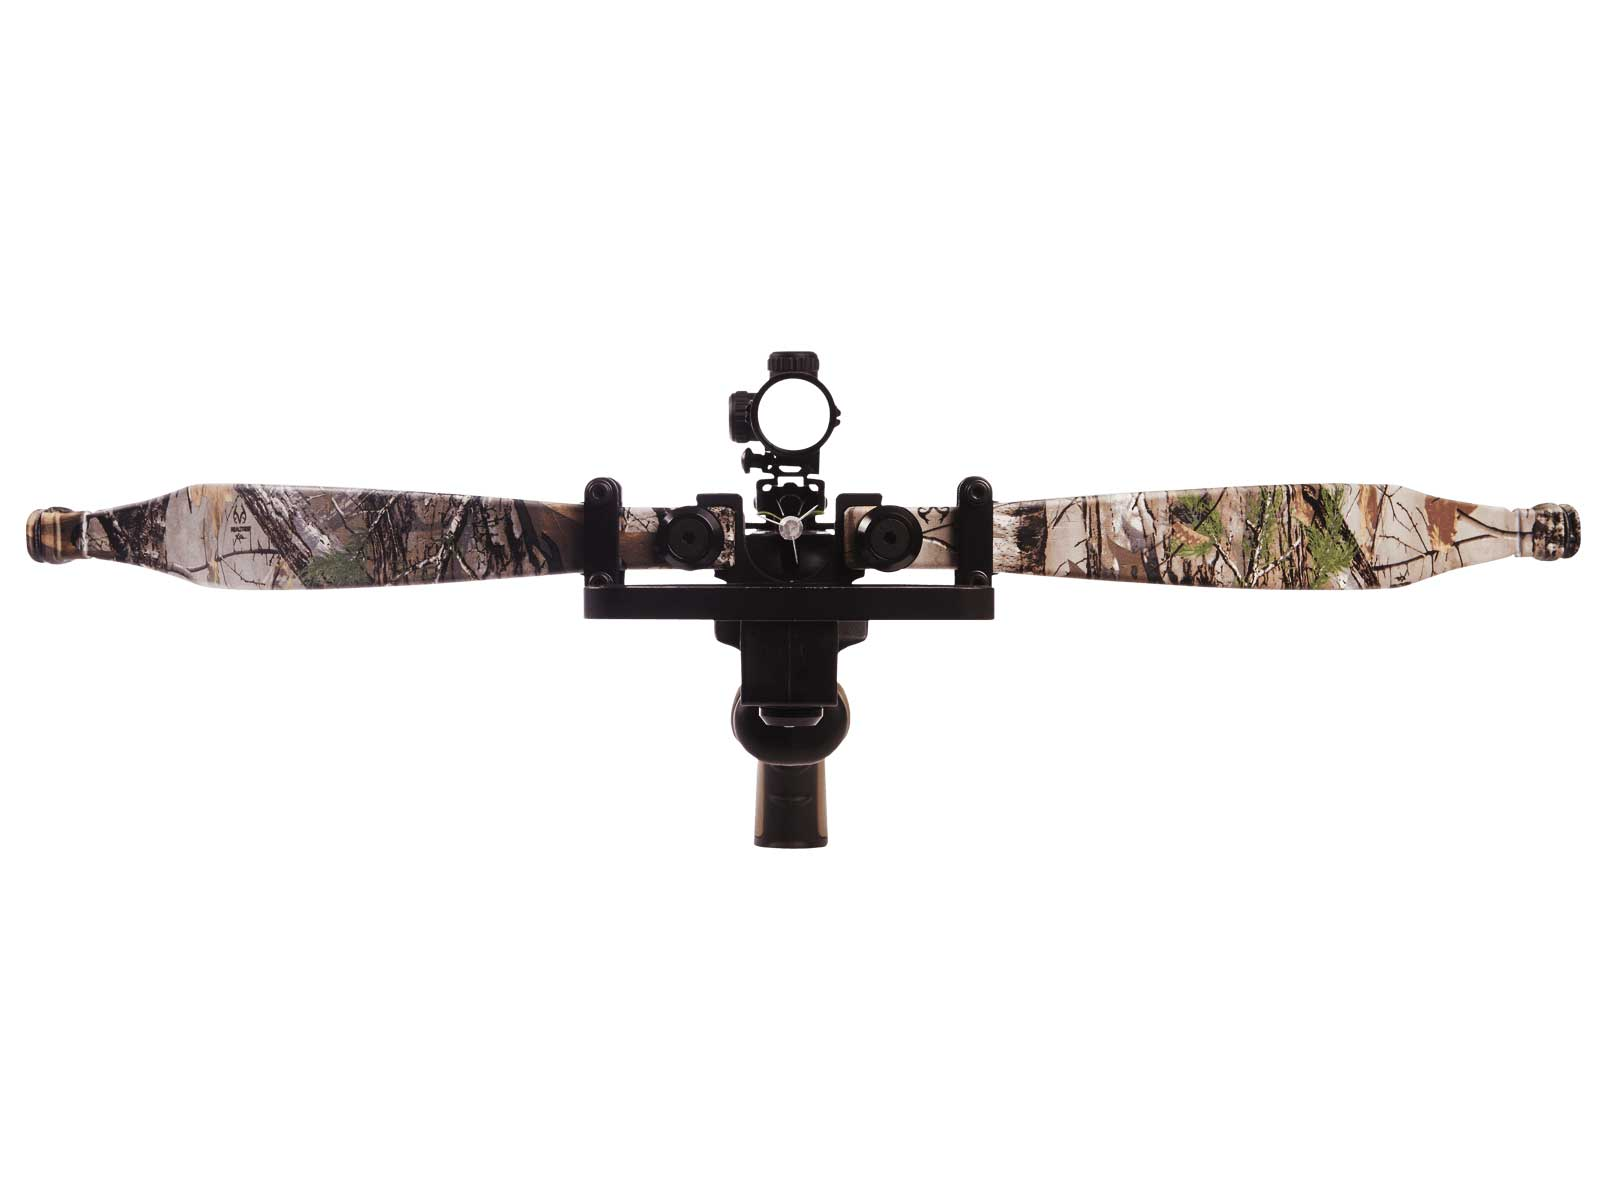 Excalibur Matrx GRZ 2 Crossbow Review